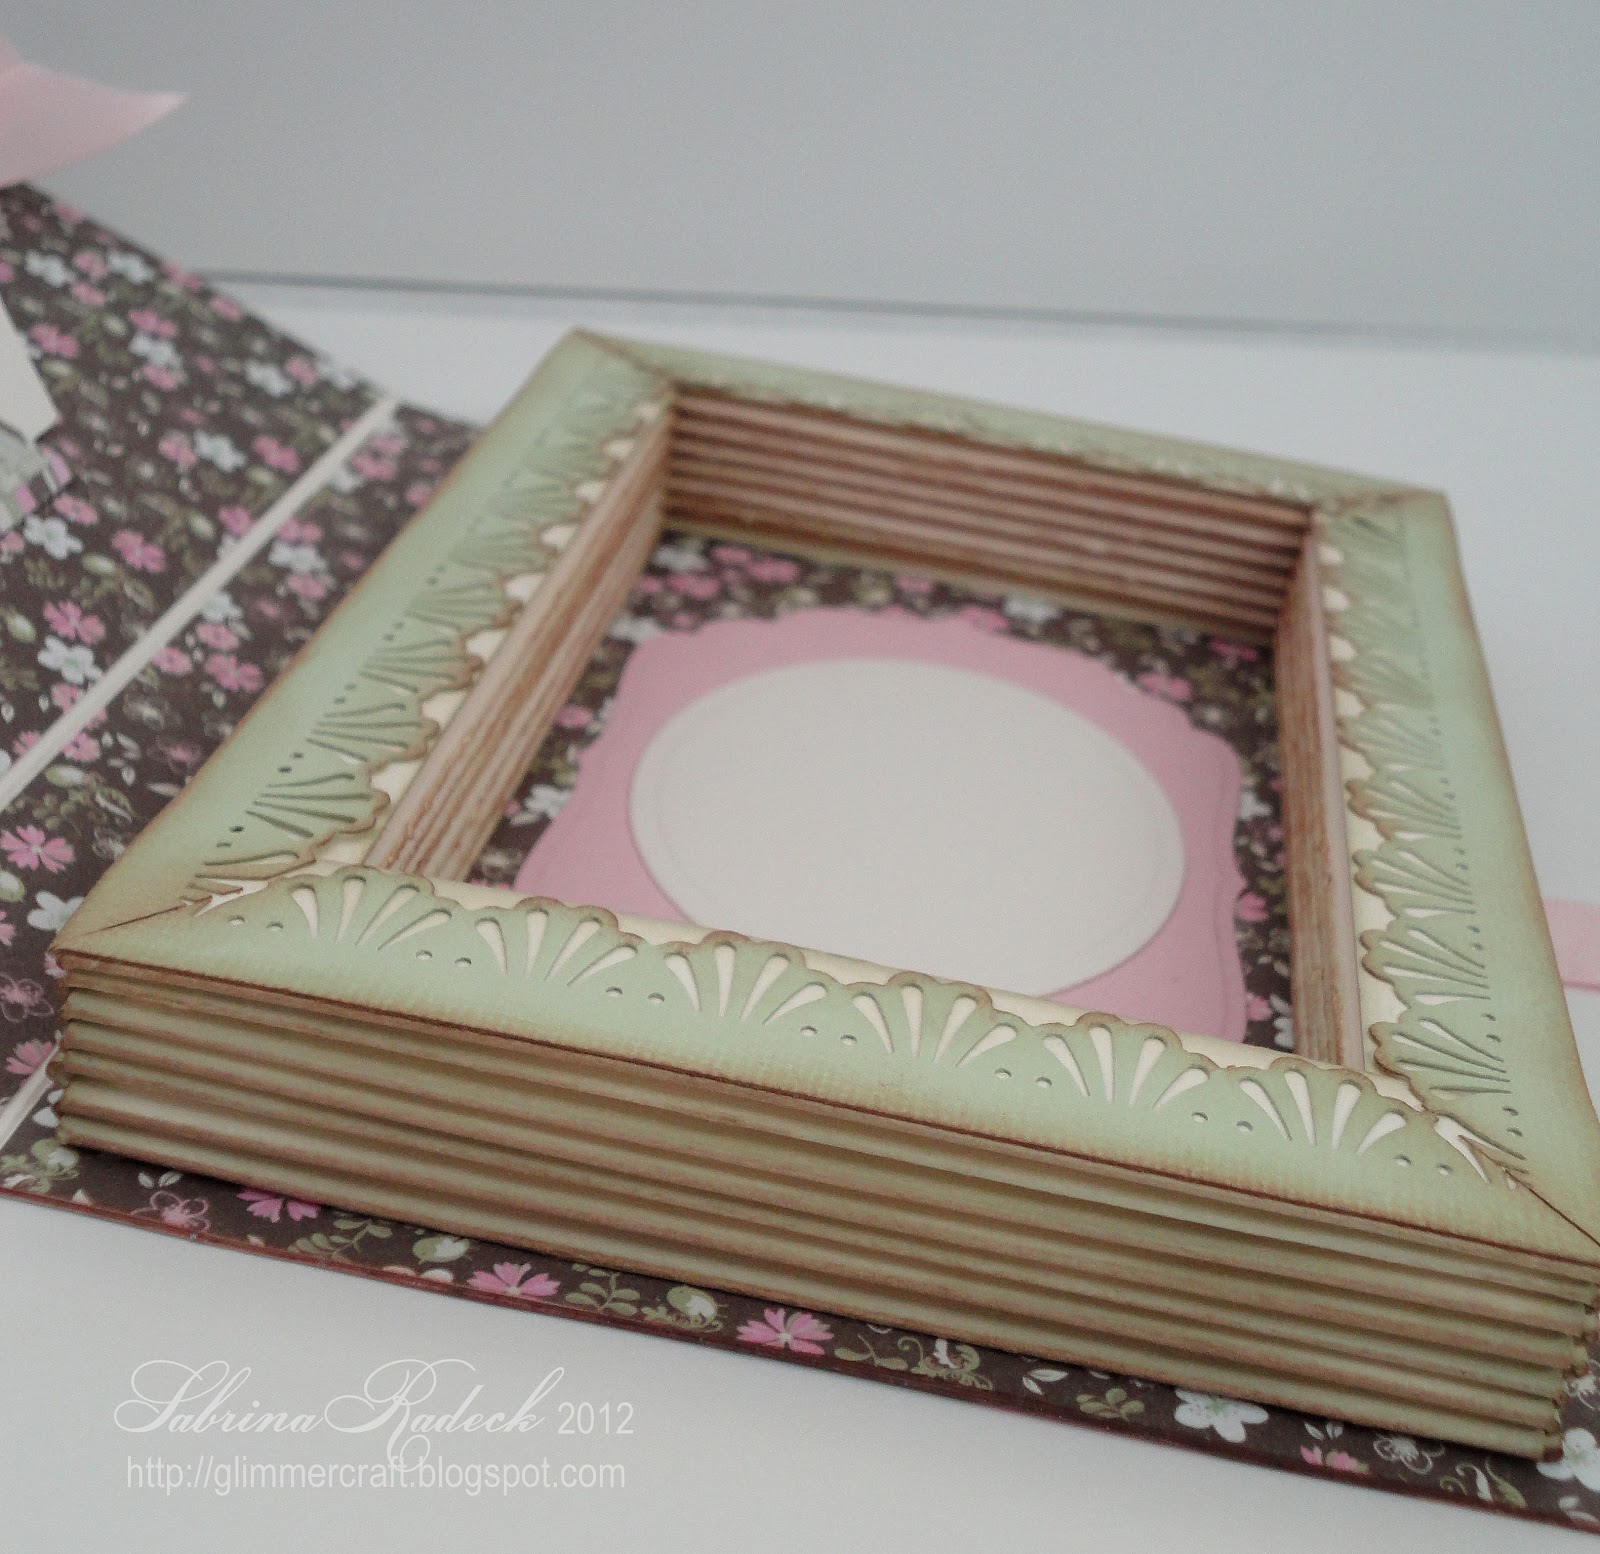 How to make the book for a scrapbook - This Book Card Can Be Filled With Treats Hiding A Message At The Bottom Or It Can Hold A Small Gift Or Can House A Beautifully Decorated Embellished Photo